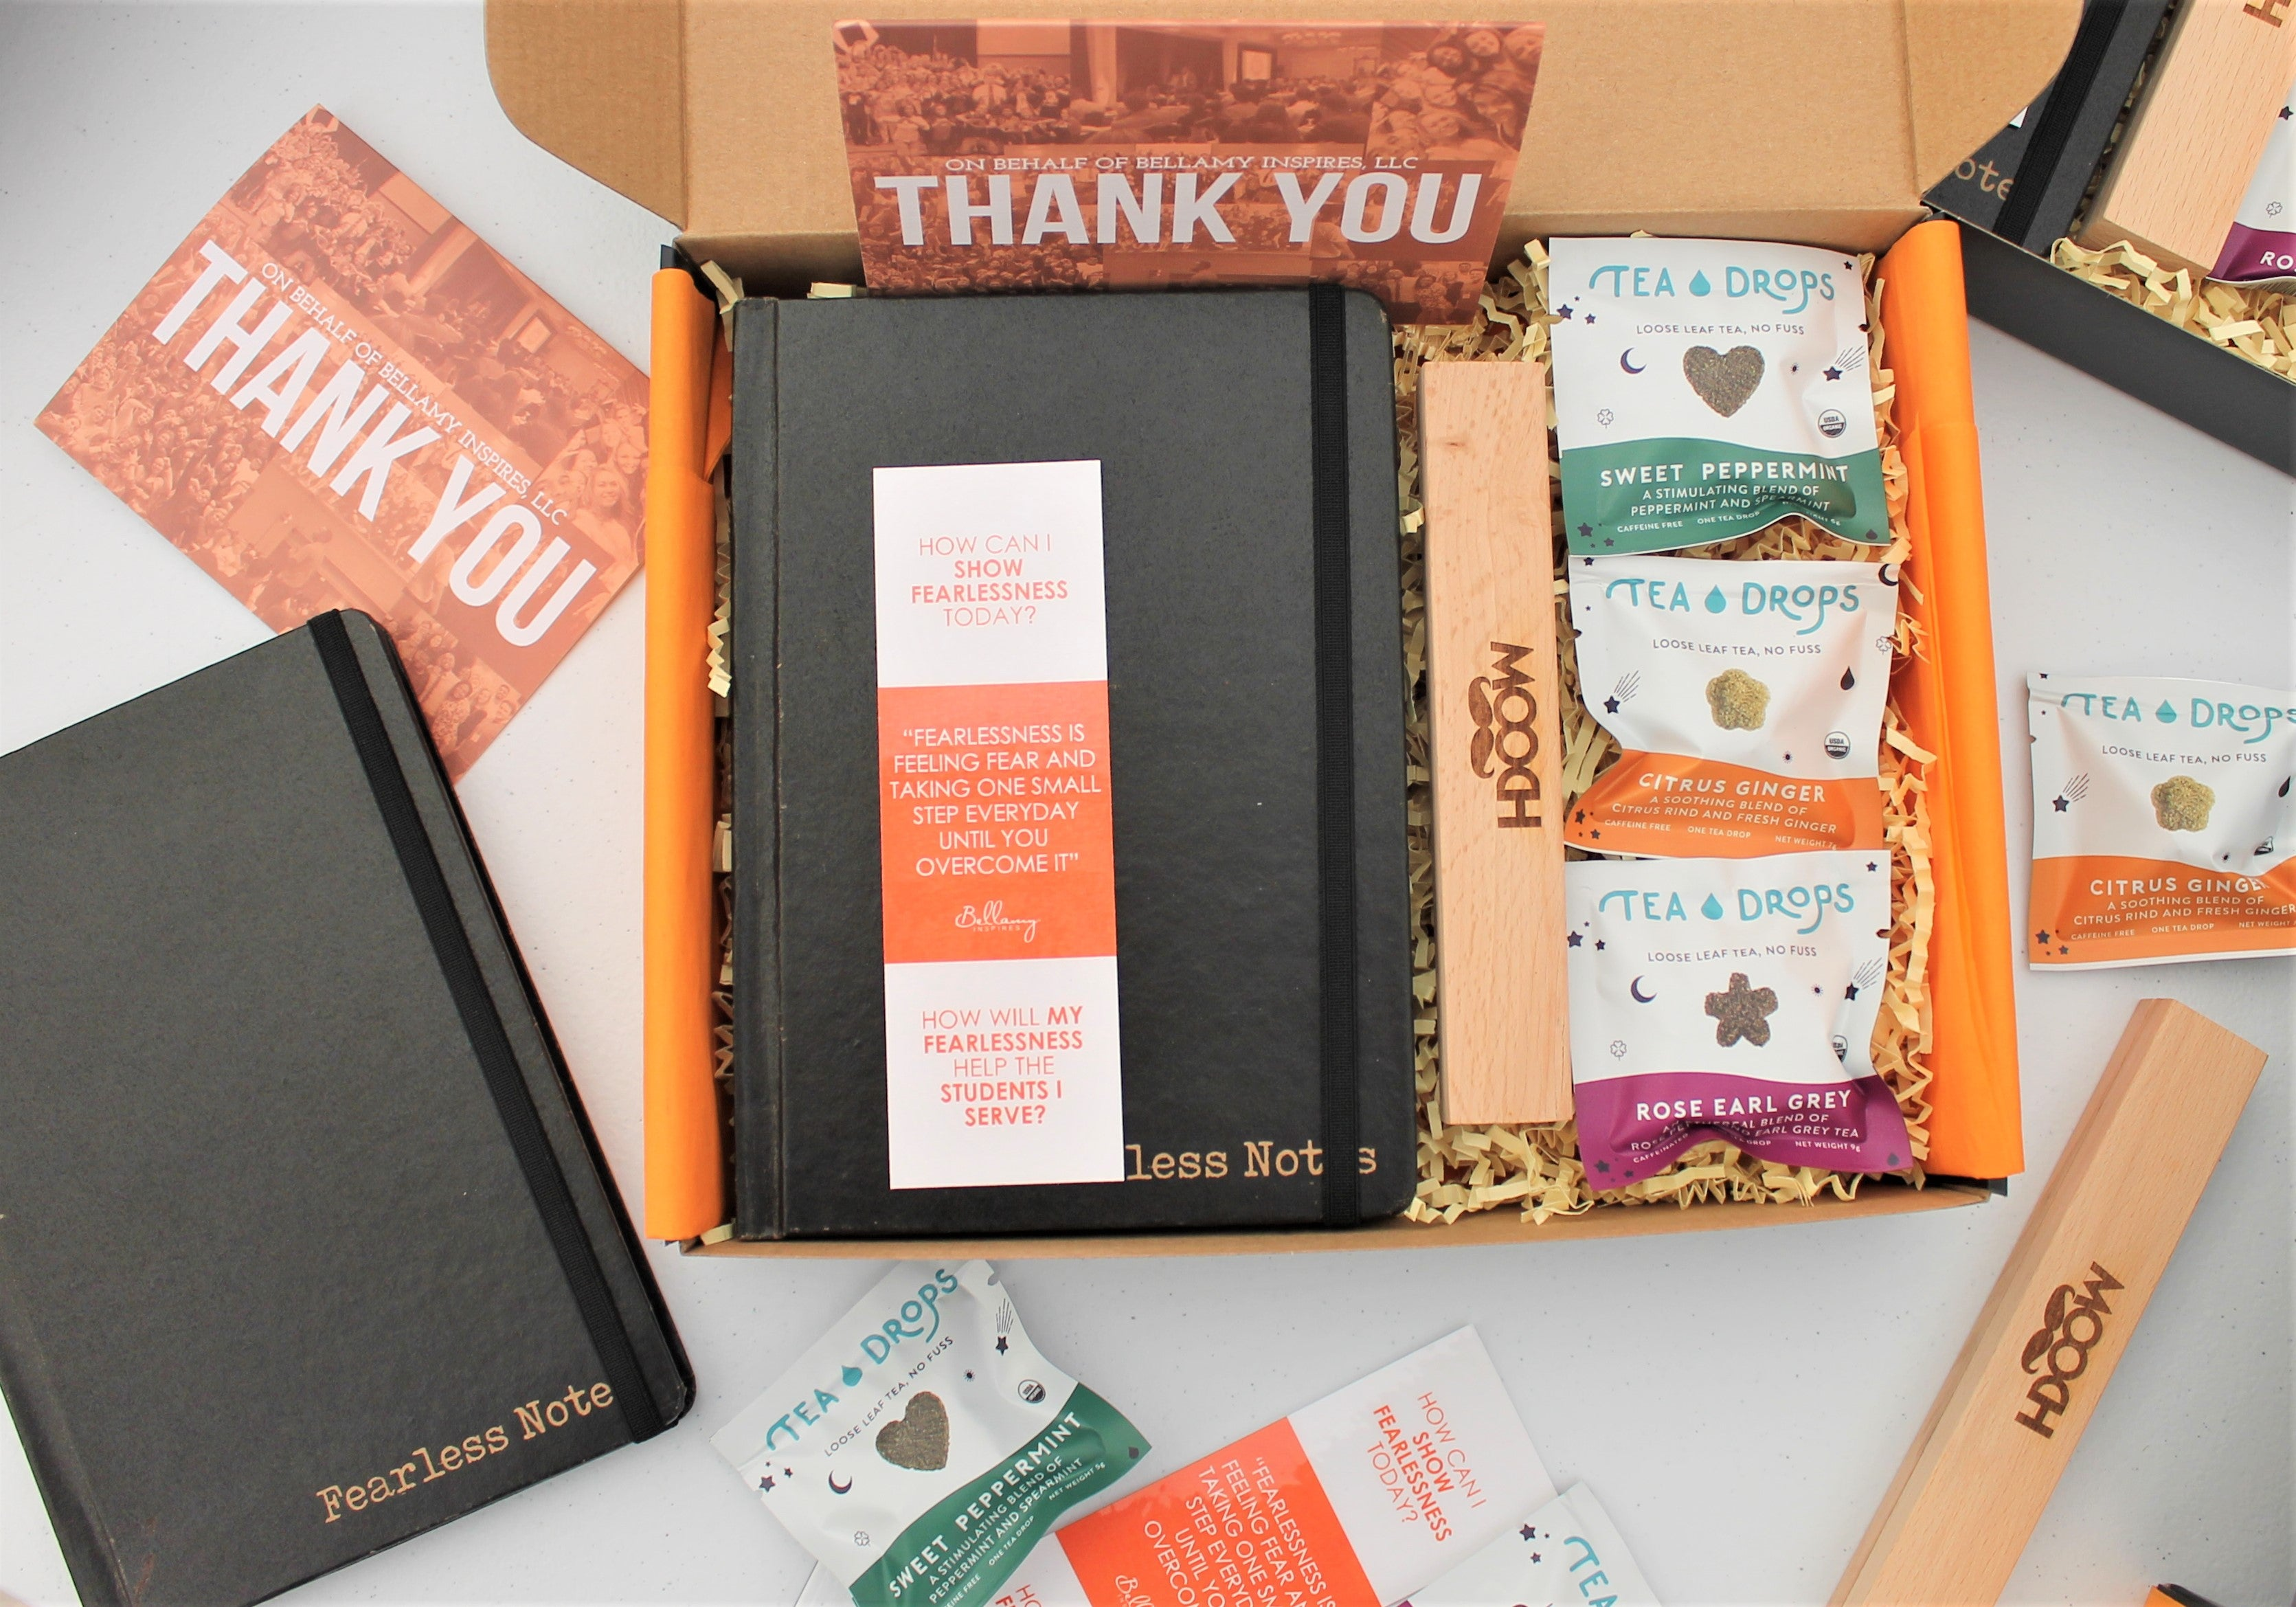 Branded products for client gifting